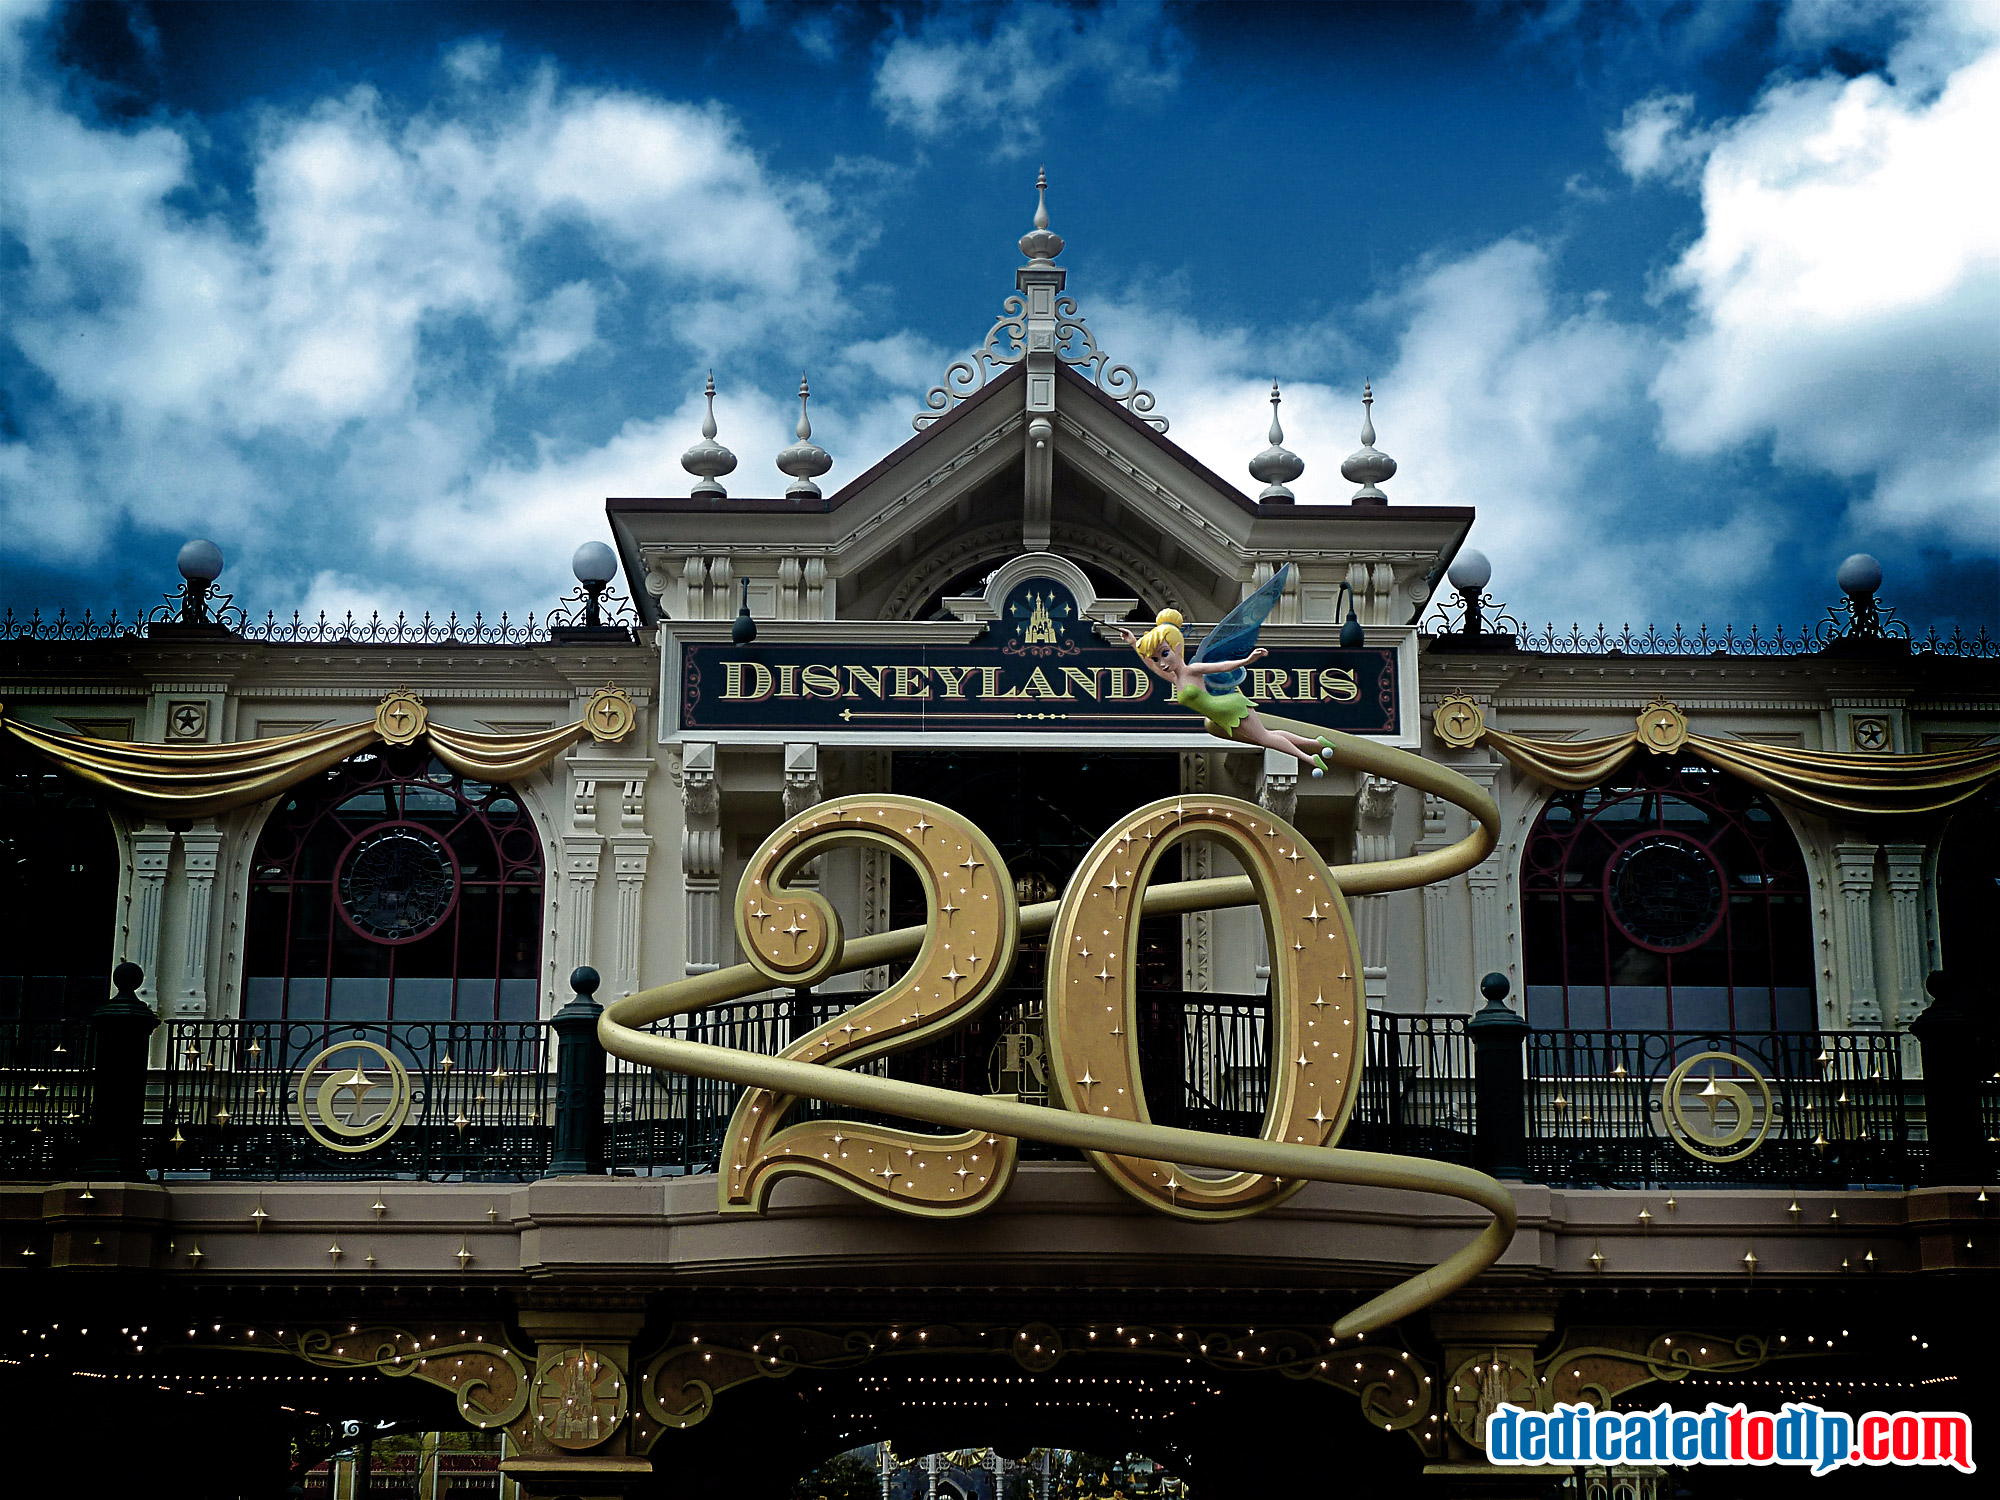 disneyland resort paris Disneyland paris guide - explore the no1 free online guidebook covering all the lands, attractions, shows, parades, restaurants and hotels of the euro disney resort.